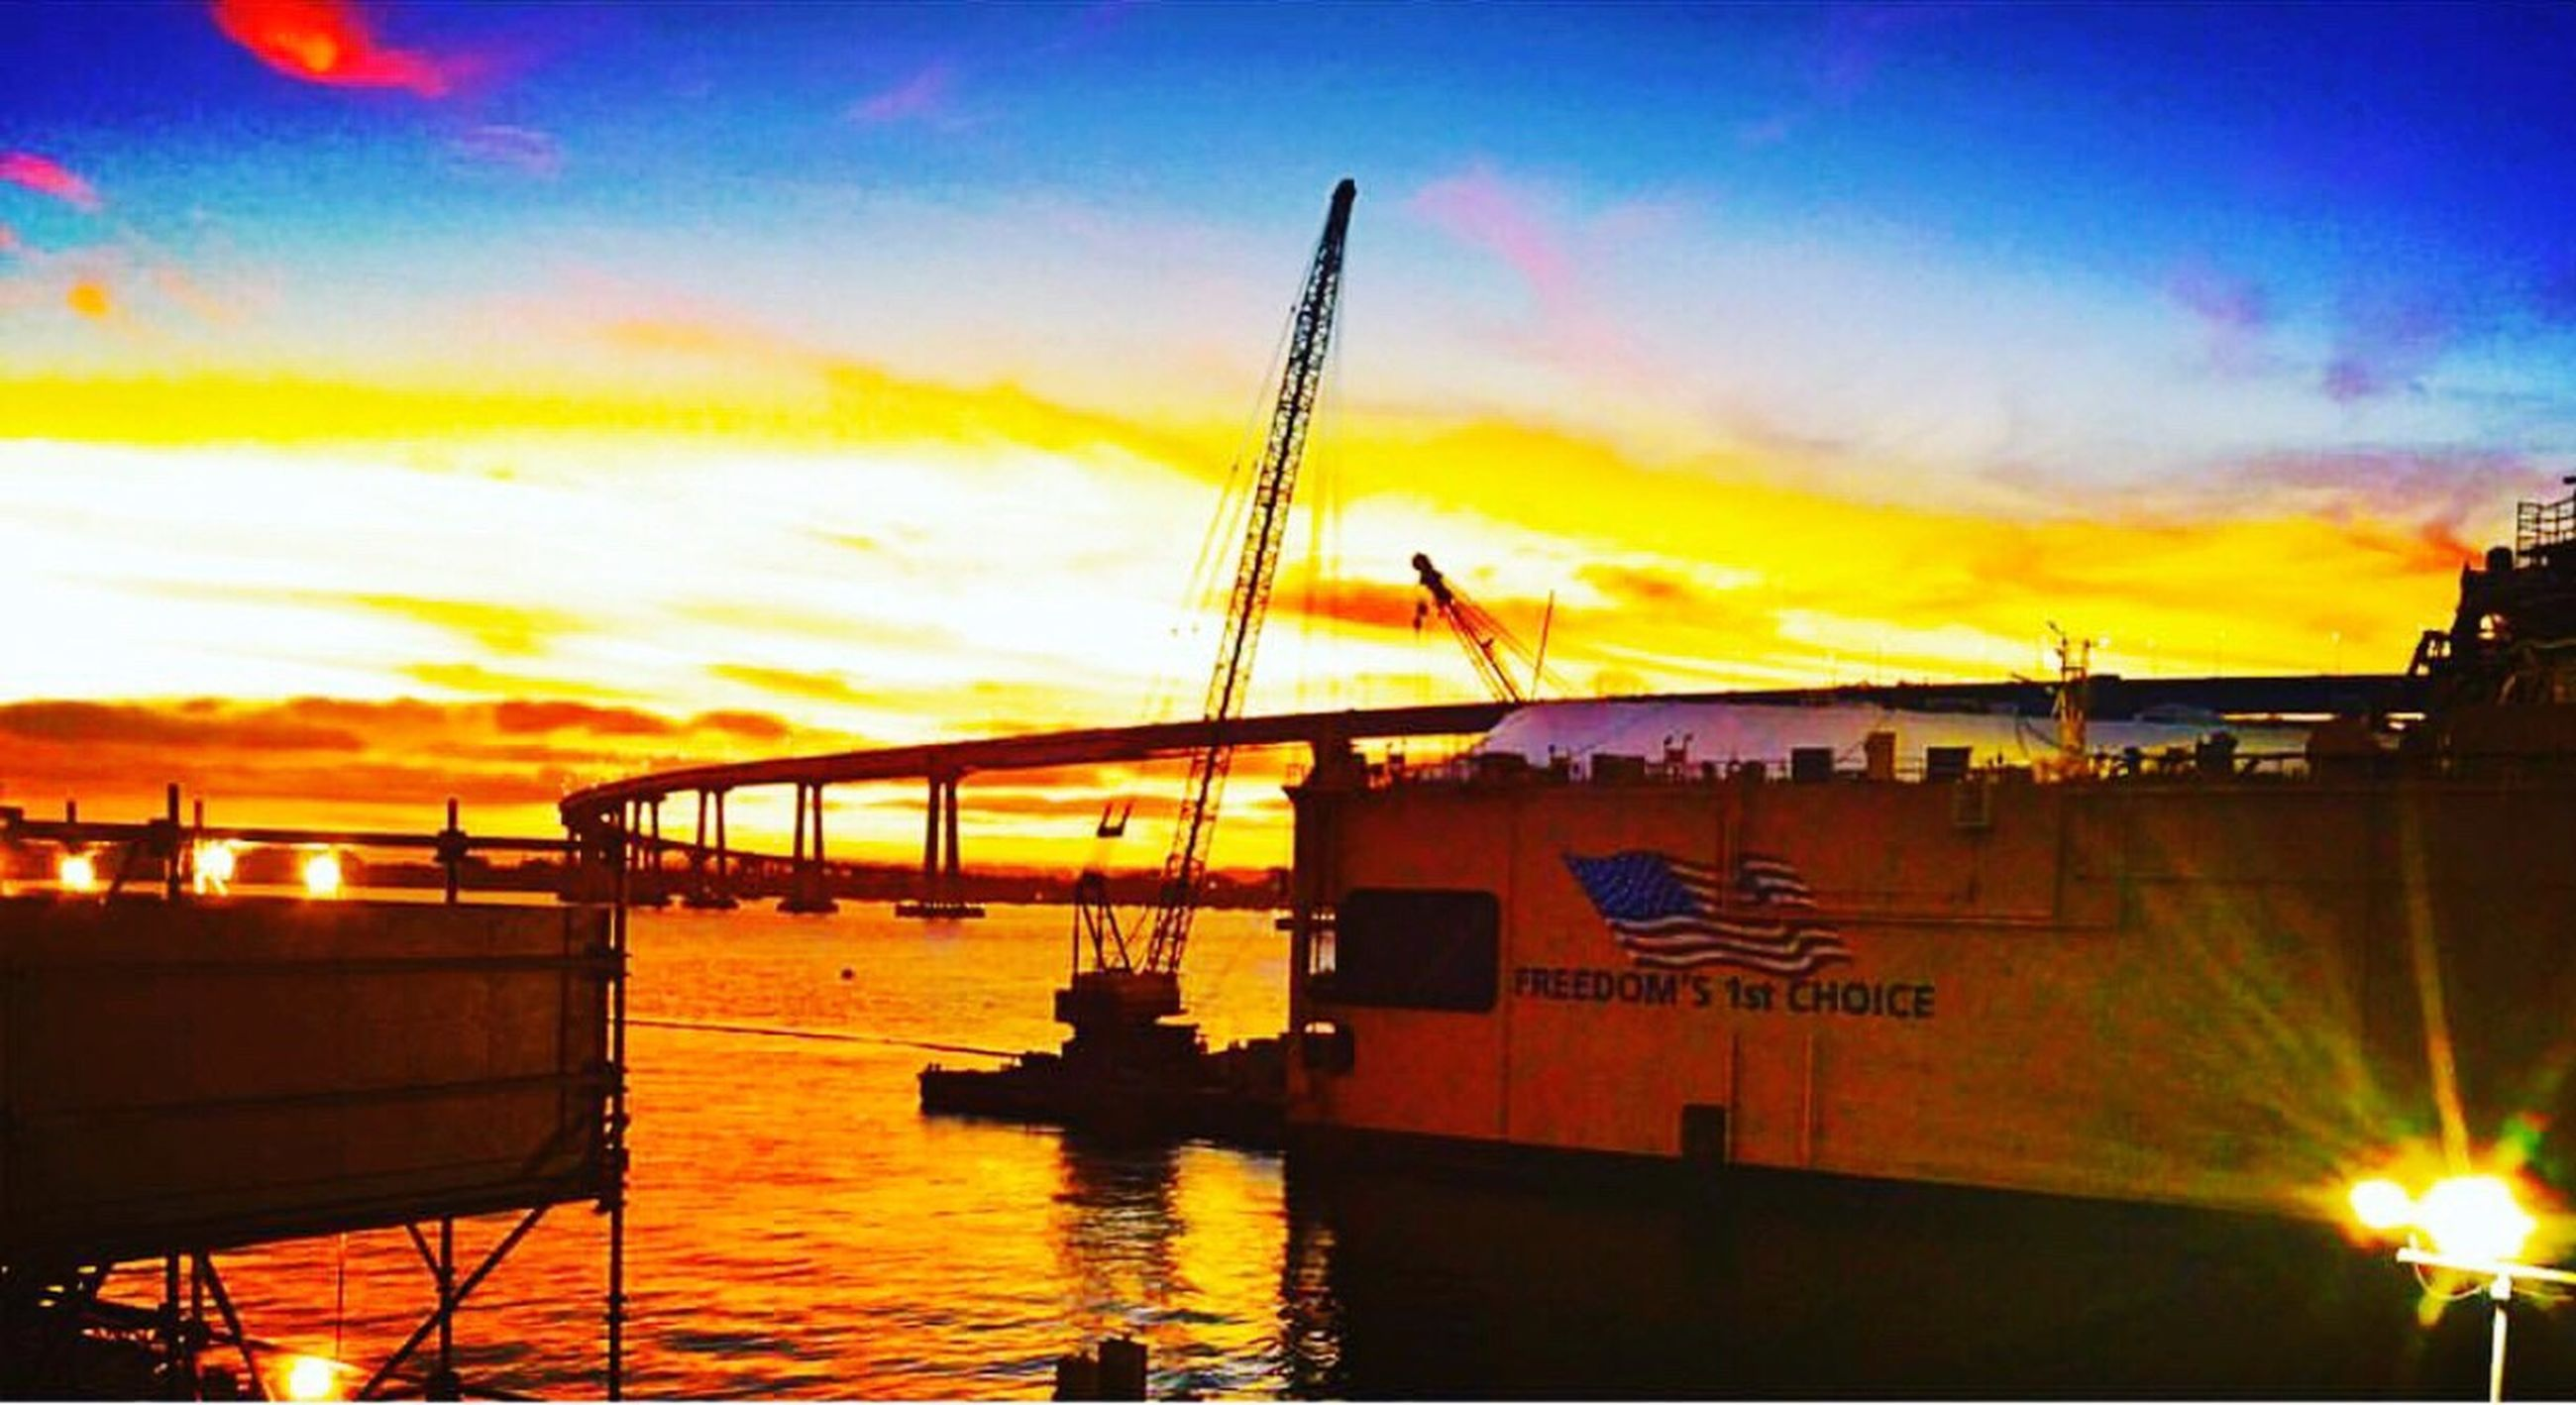 sunset, sky, water, built structure, orange color, architecture, sea, transportation, city, no people, outdoors, building exterior, cloud - sky, nautical vessel, nature, silhouette, bridge - man made structure, beauty in nature, harbor, day